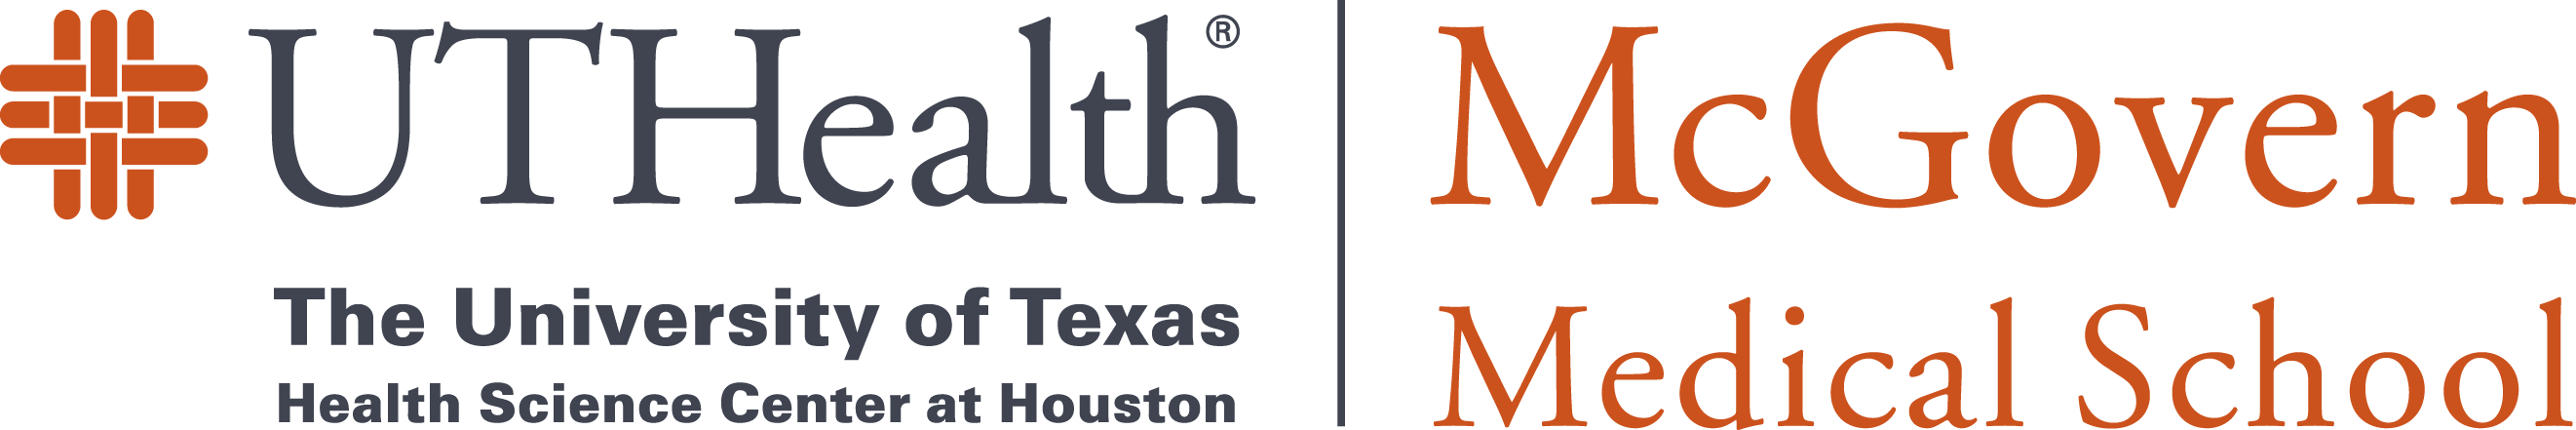 University of Texas Medical School logo